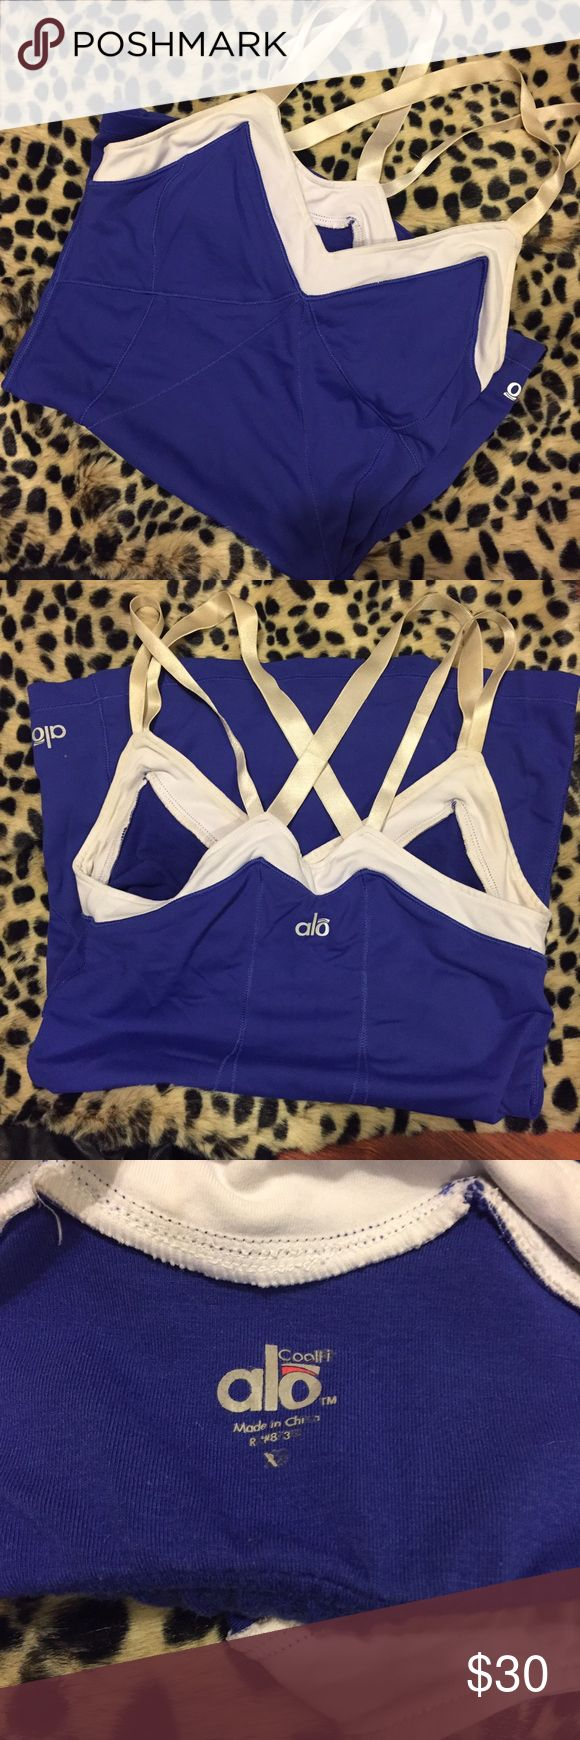 Alo Yoga Athletic Purple Tank Top Alo Yoga Purple Strappy athletic tank top! Super cute! White Strappy look! Size XS! Used but in good condition! Celebrity Favorite! ALO Yoga Tops Tank Tops